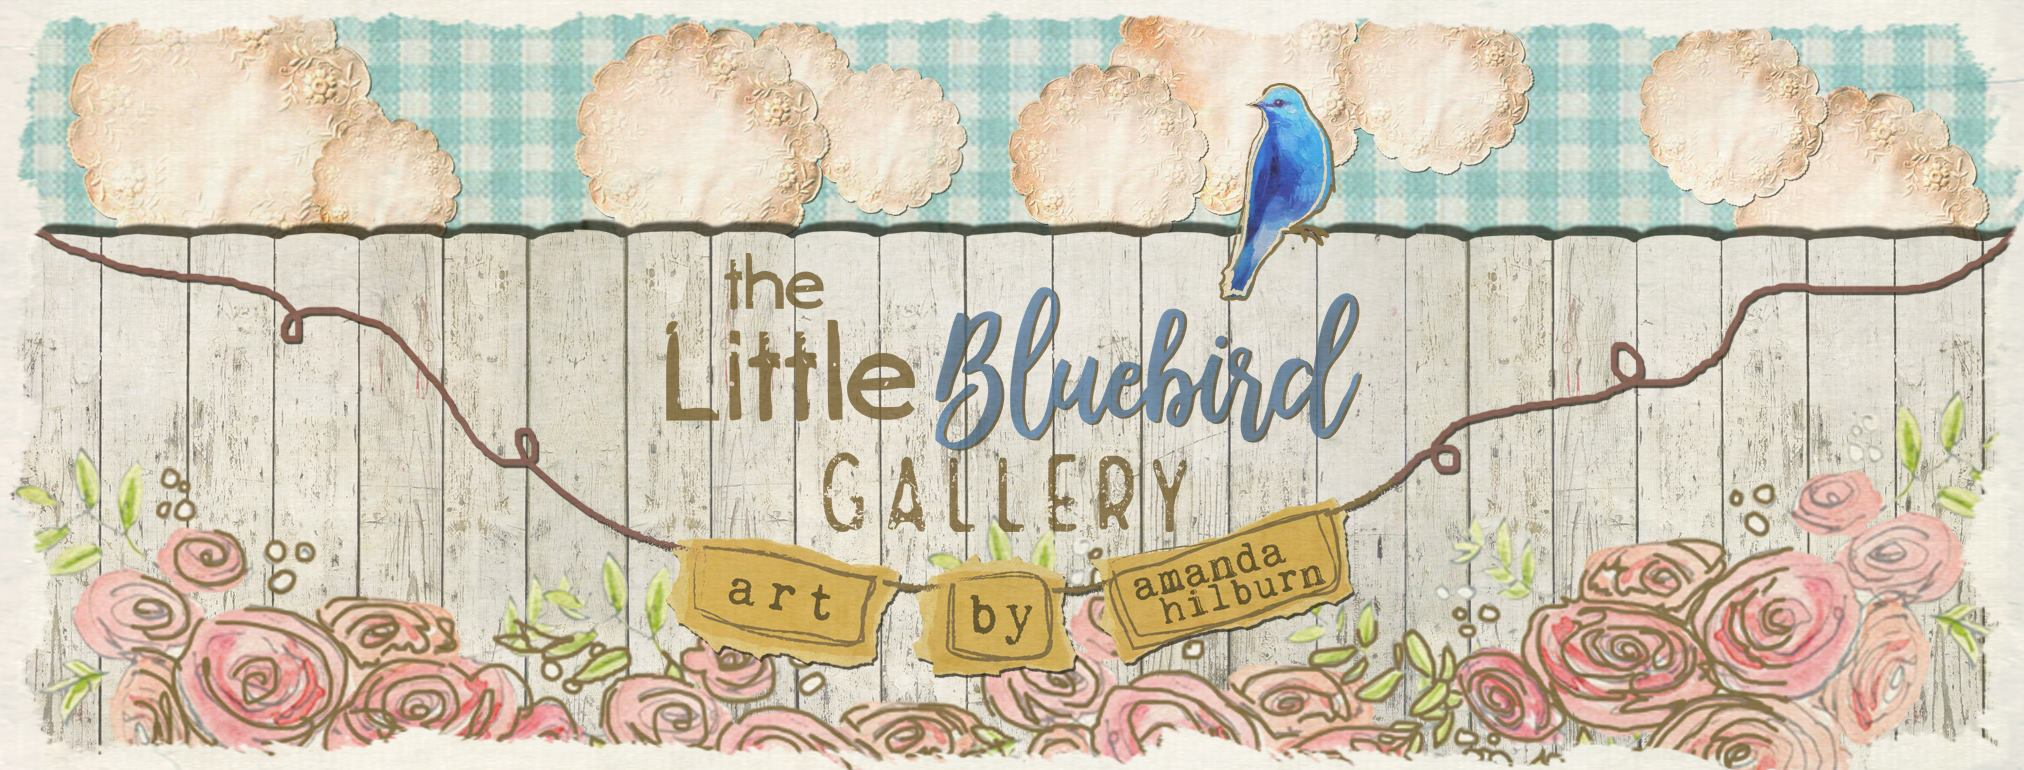 The Little Bluebird Gallery